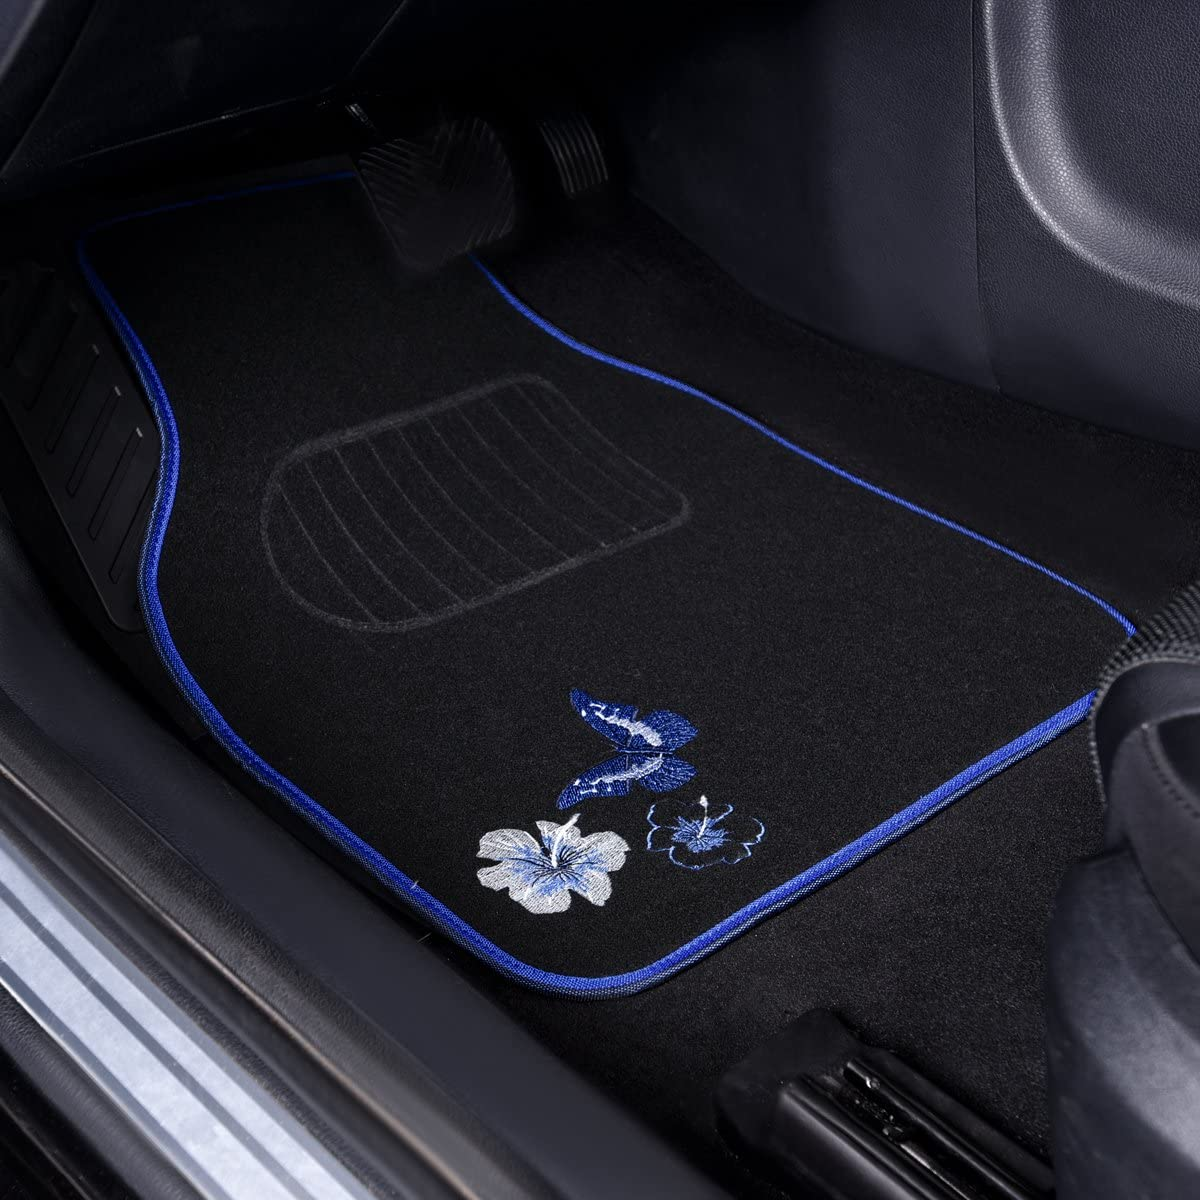 Set of 4 Black and Blue CAR PASS Embroidery Butterfly and Flower Universal Fit Car Floor Mats Fit for Suvs,Sedans,Trucks,Cars